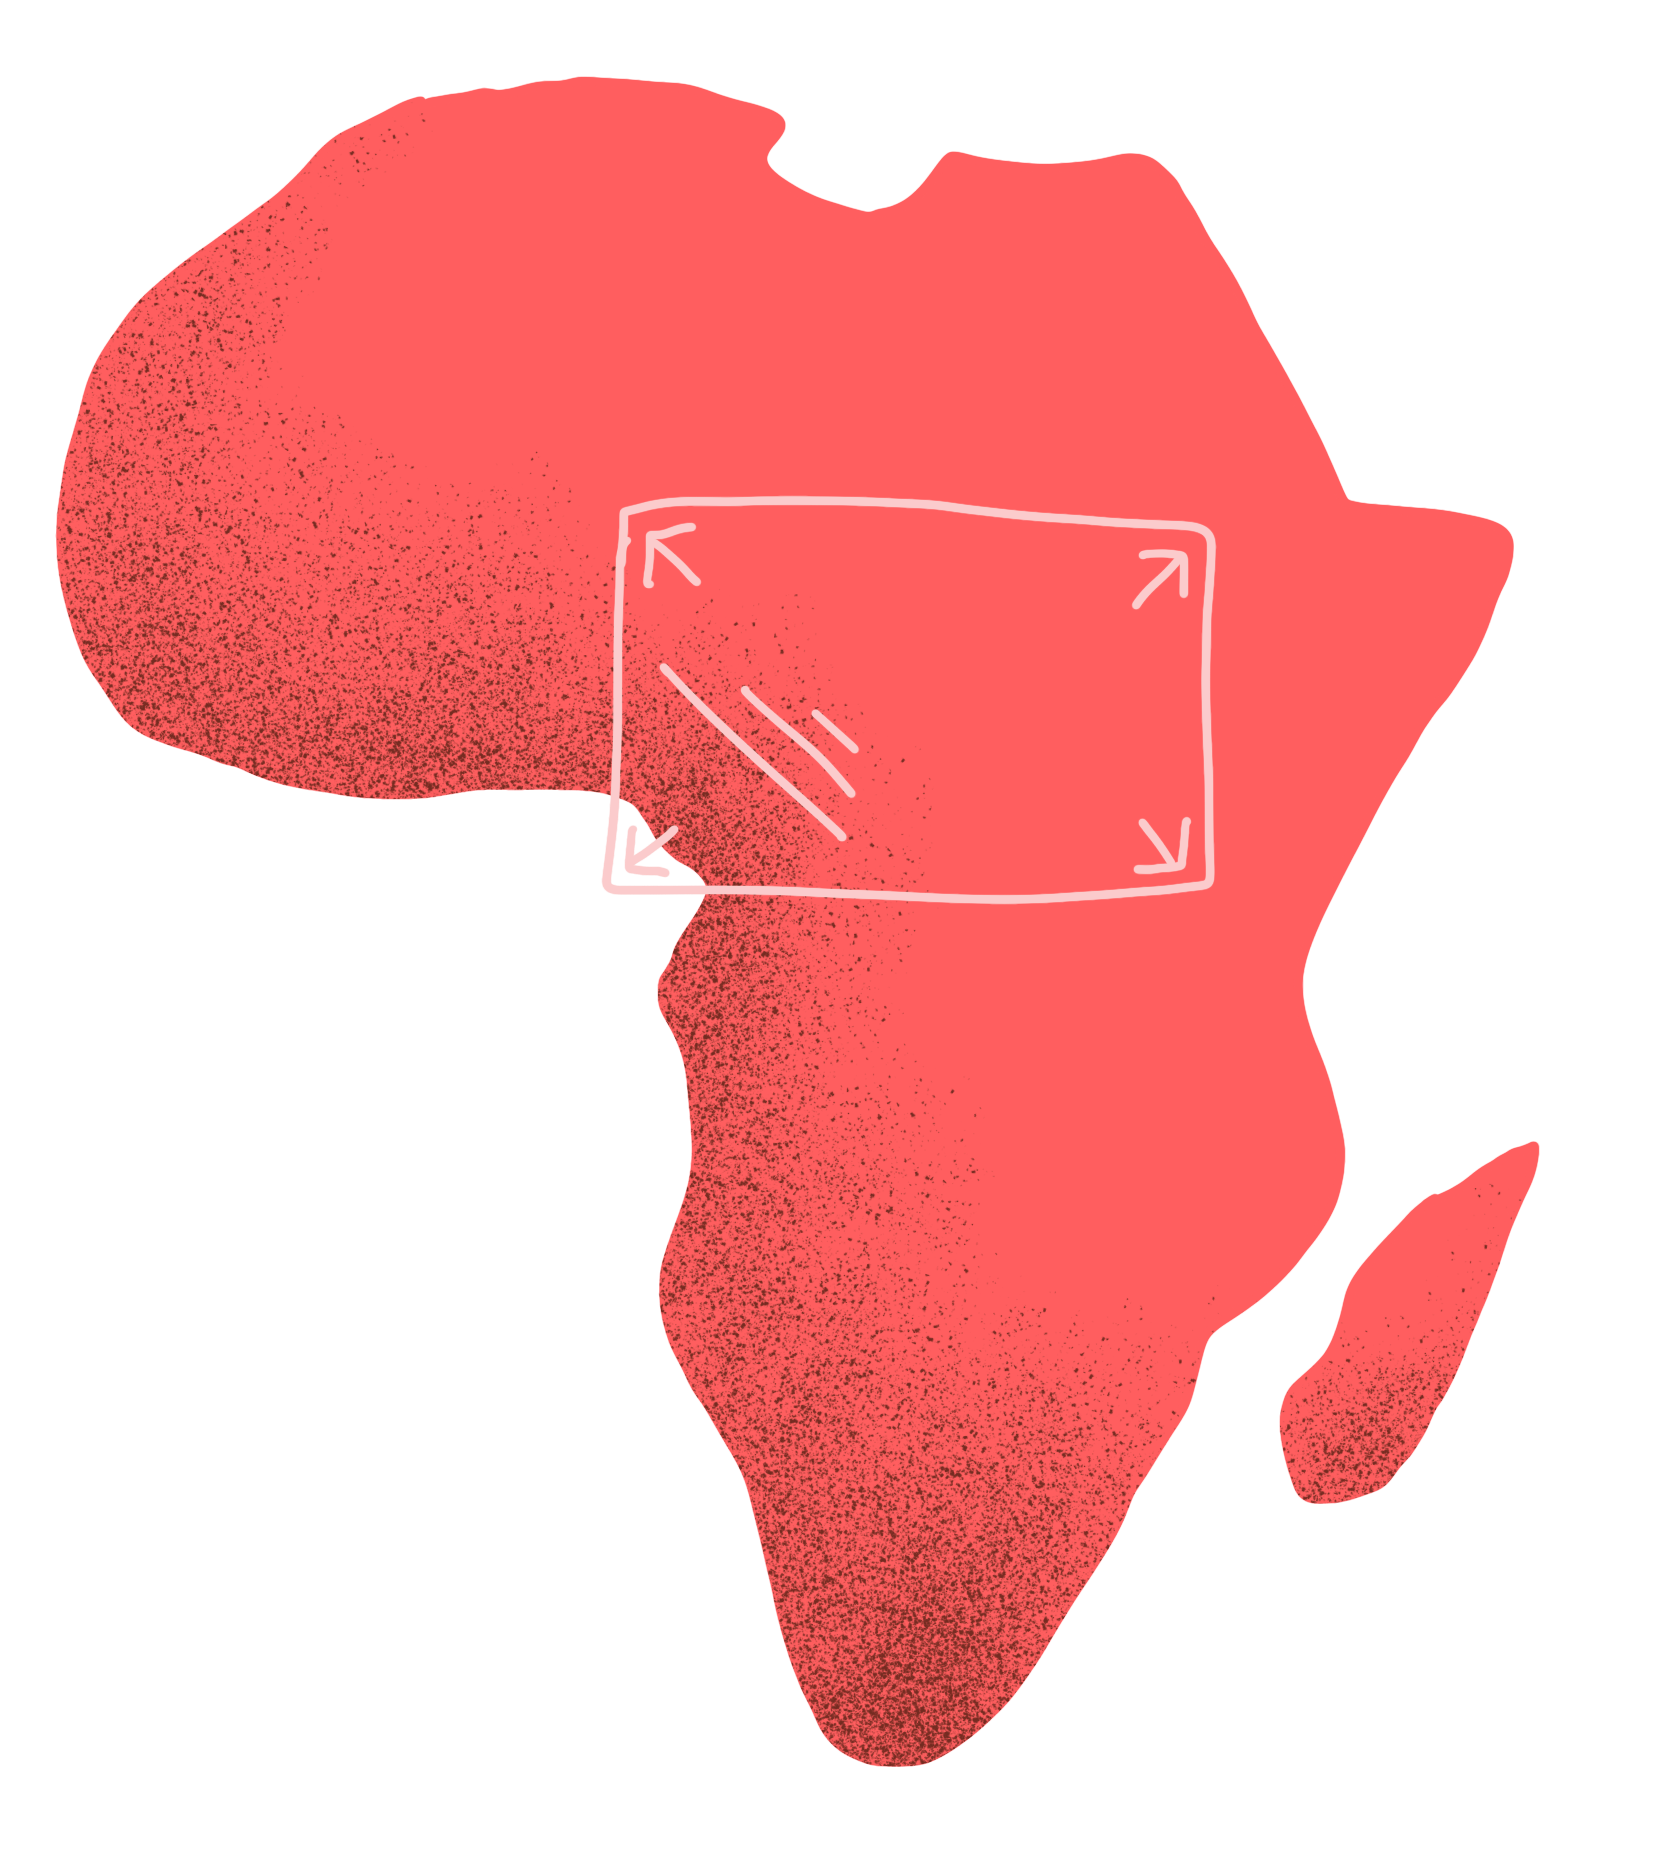 Illustration of African Continent